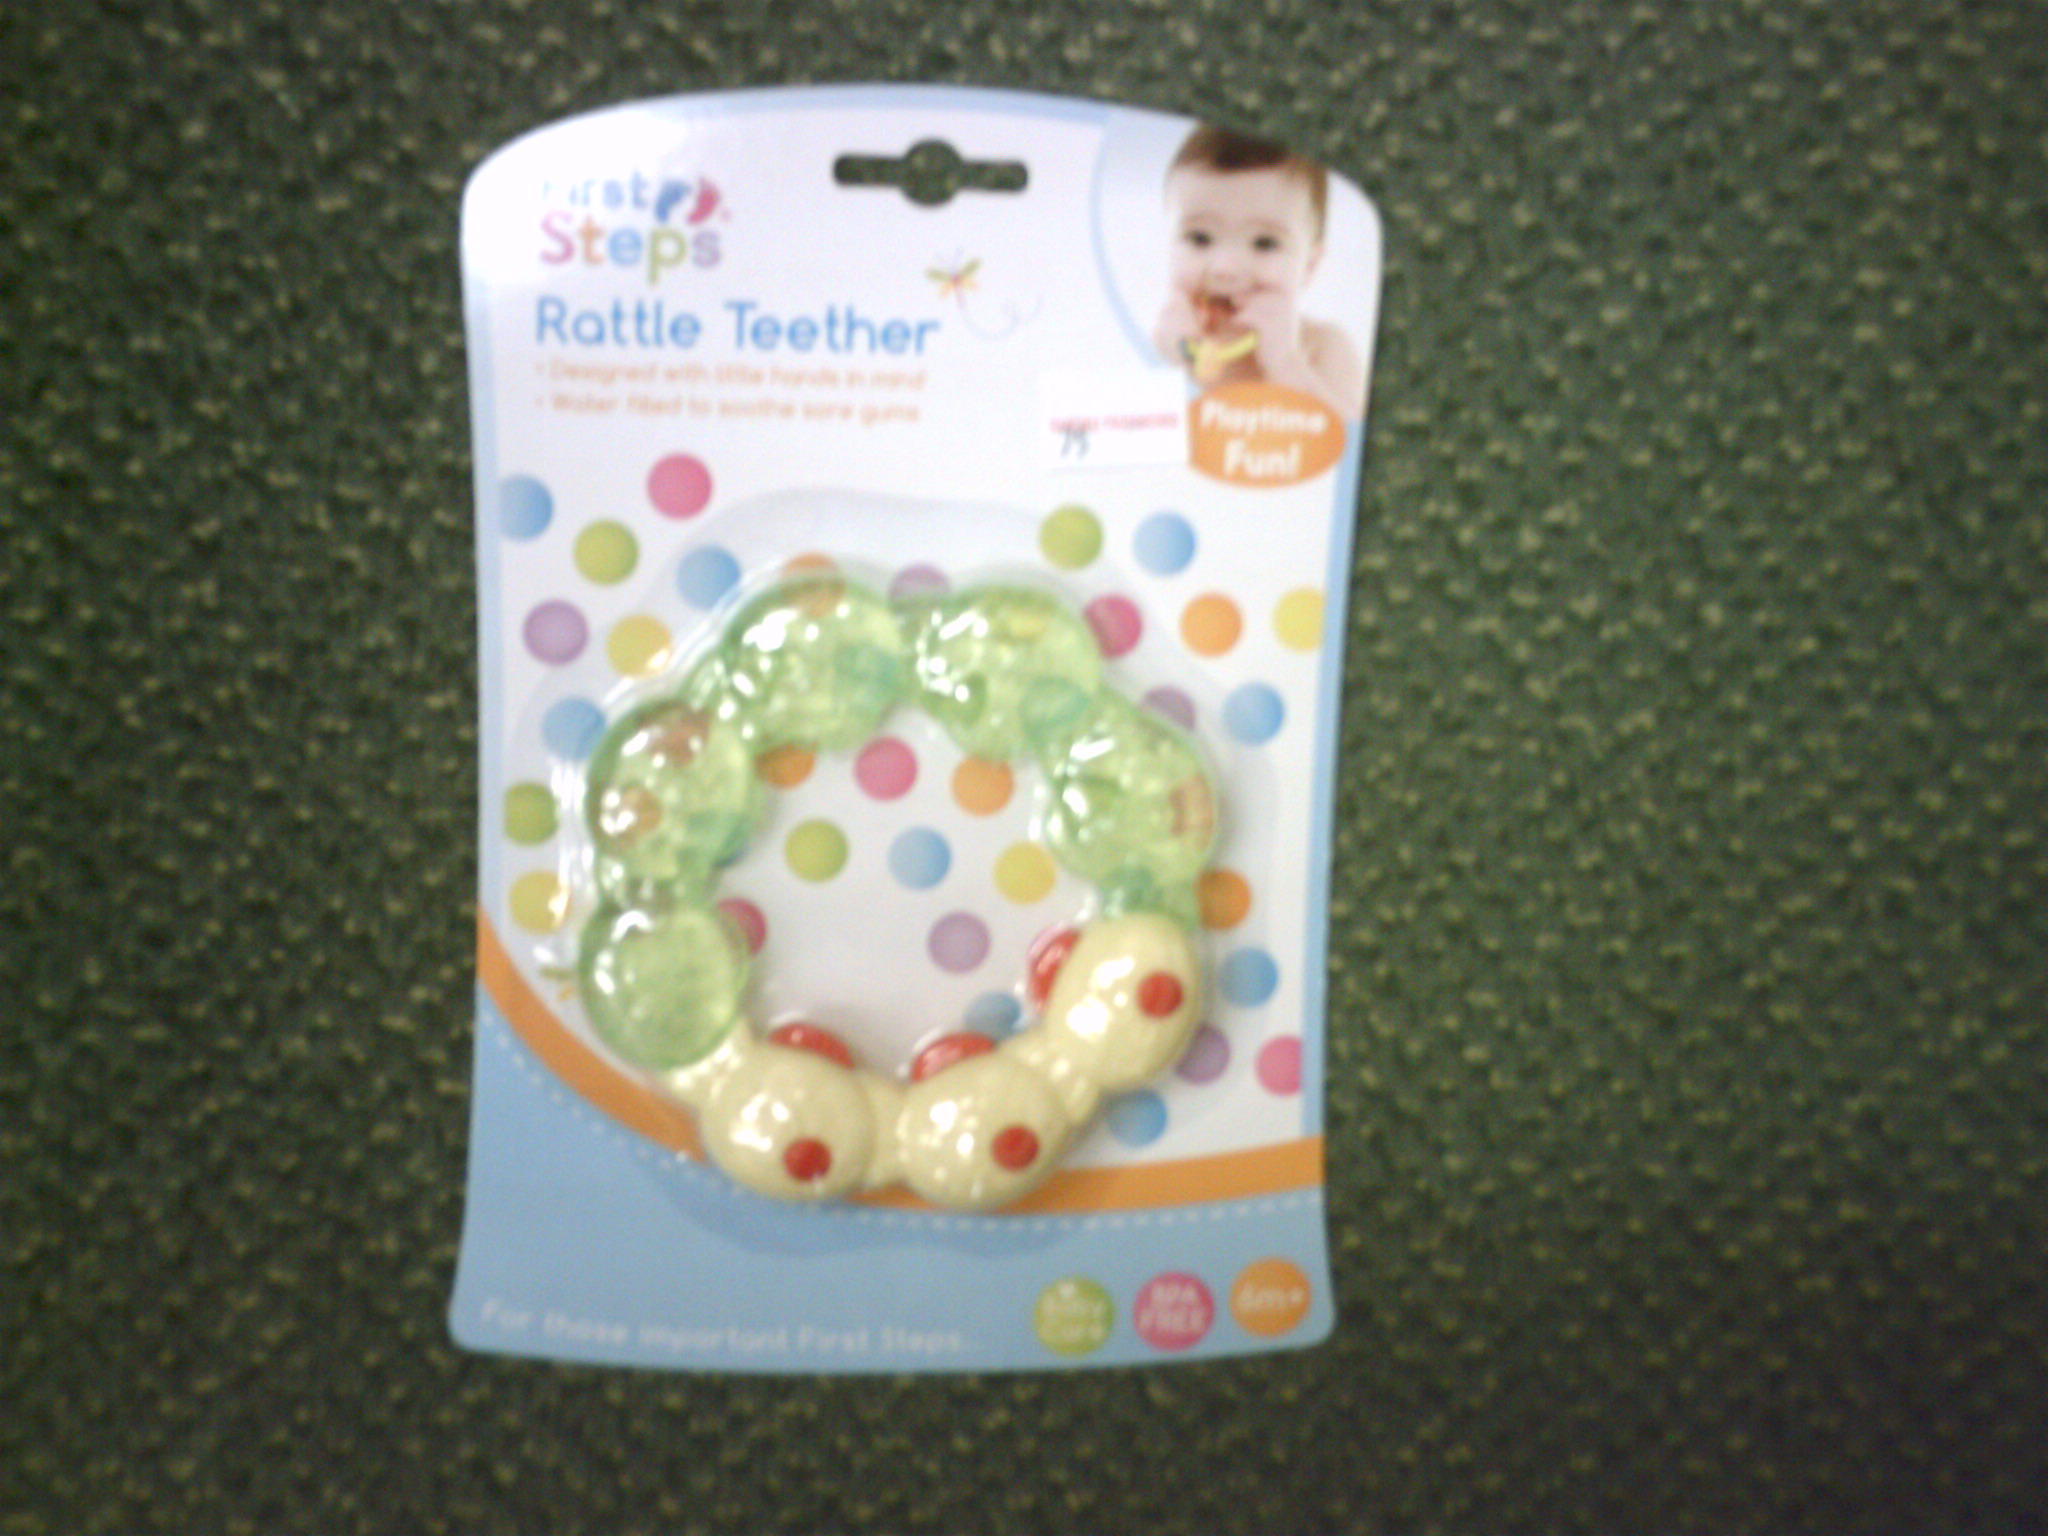 RATTLE TEETHER-PS 354